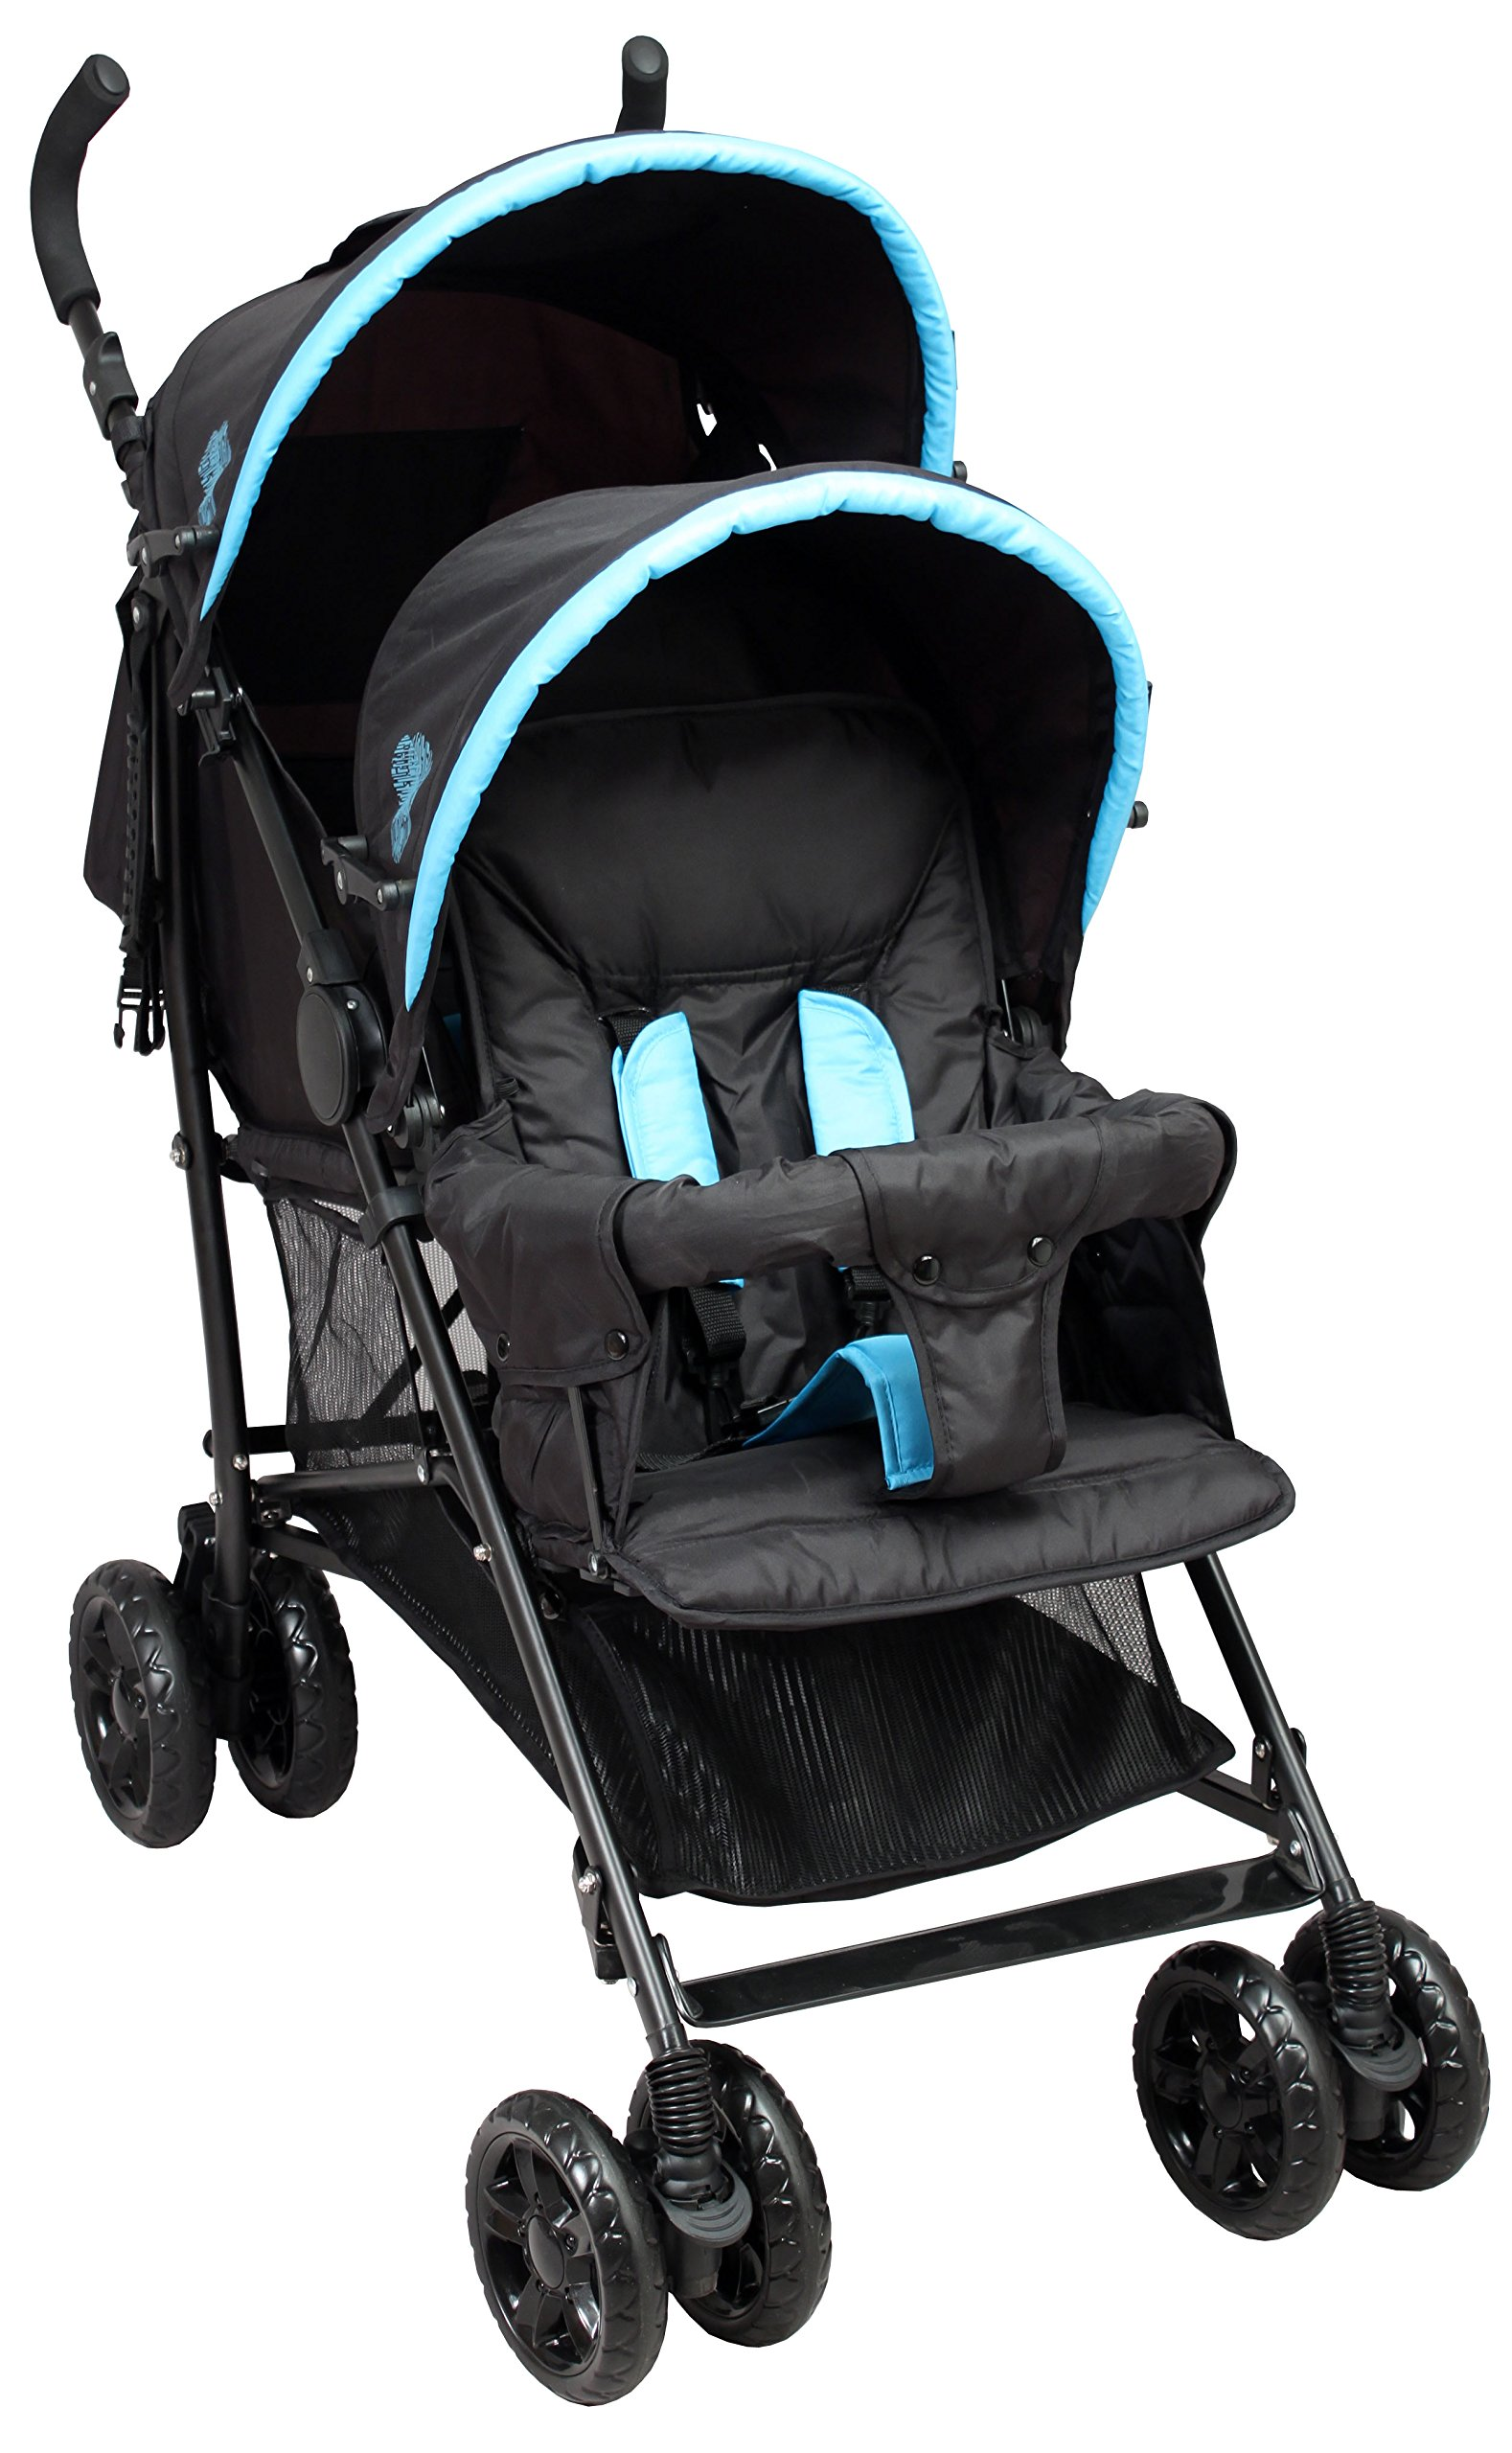 Bambisol Poussette Canne double Noir Turquoise product image